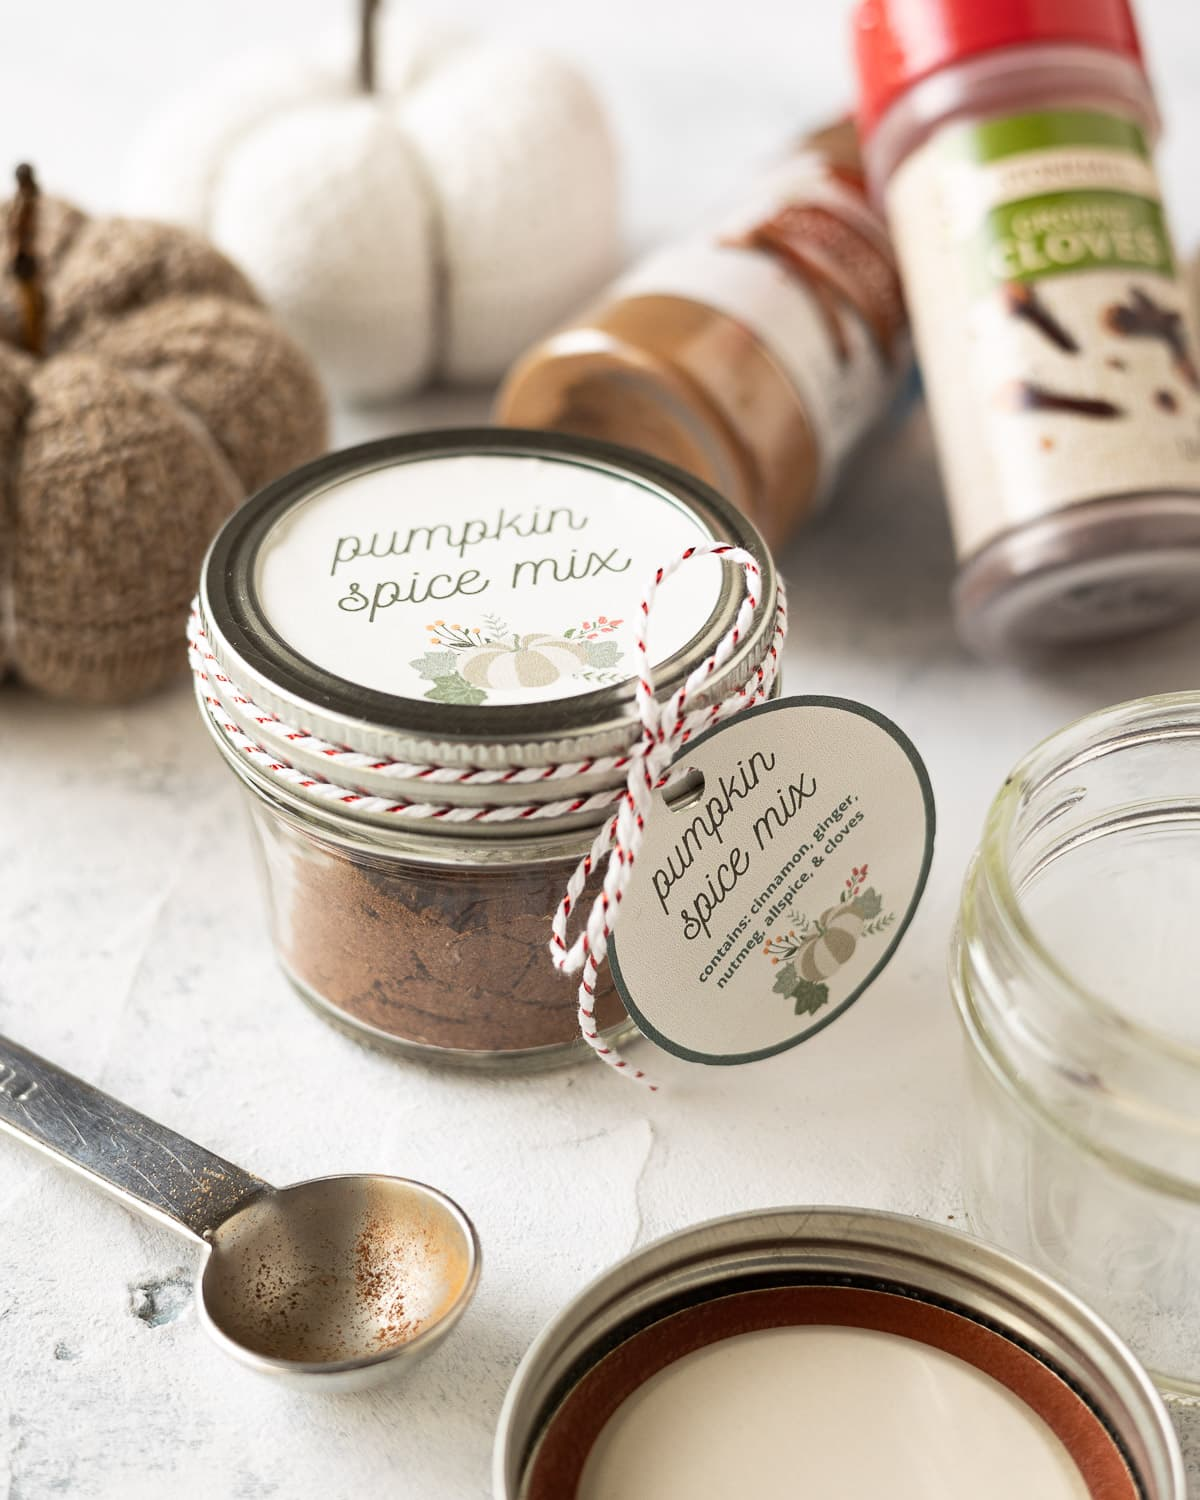 A jar of homemade pumpkin spice mix surrounded by spice jars and a measuring spoon.